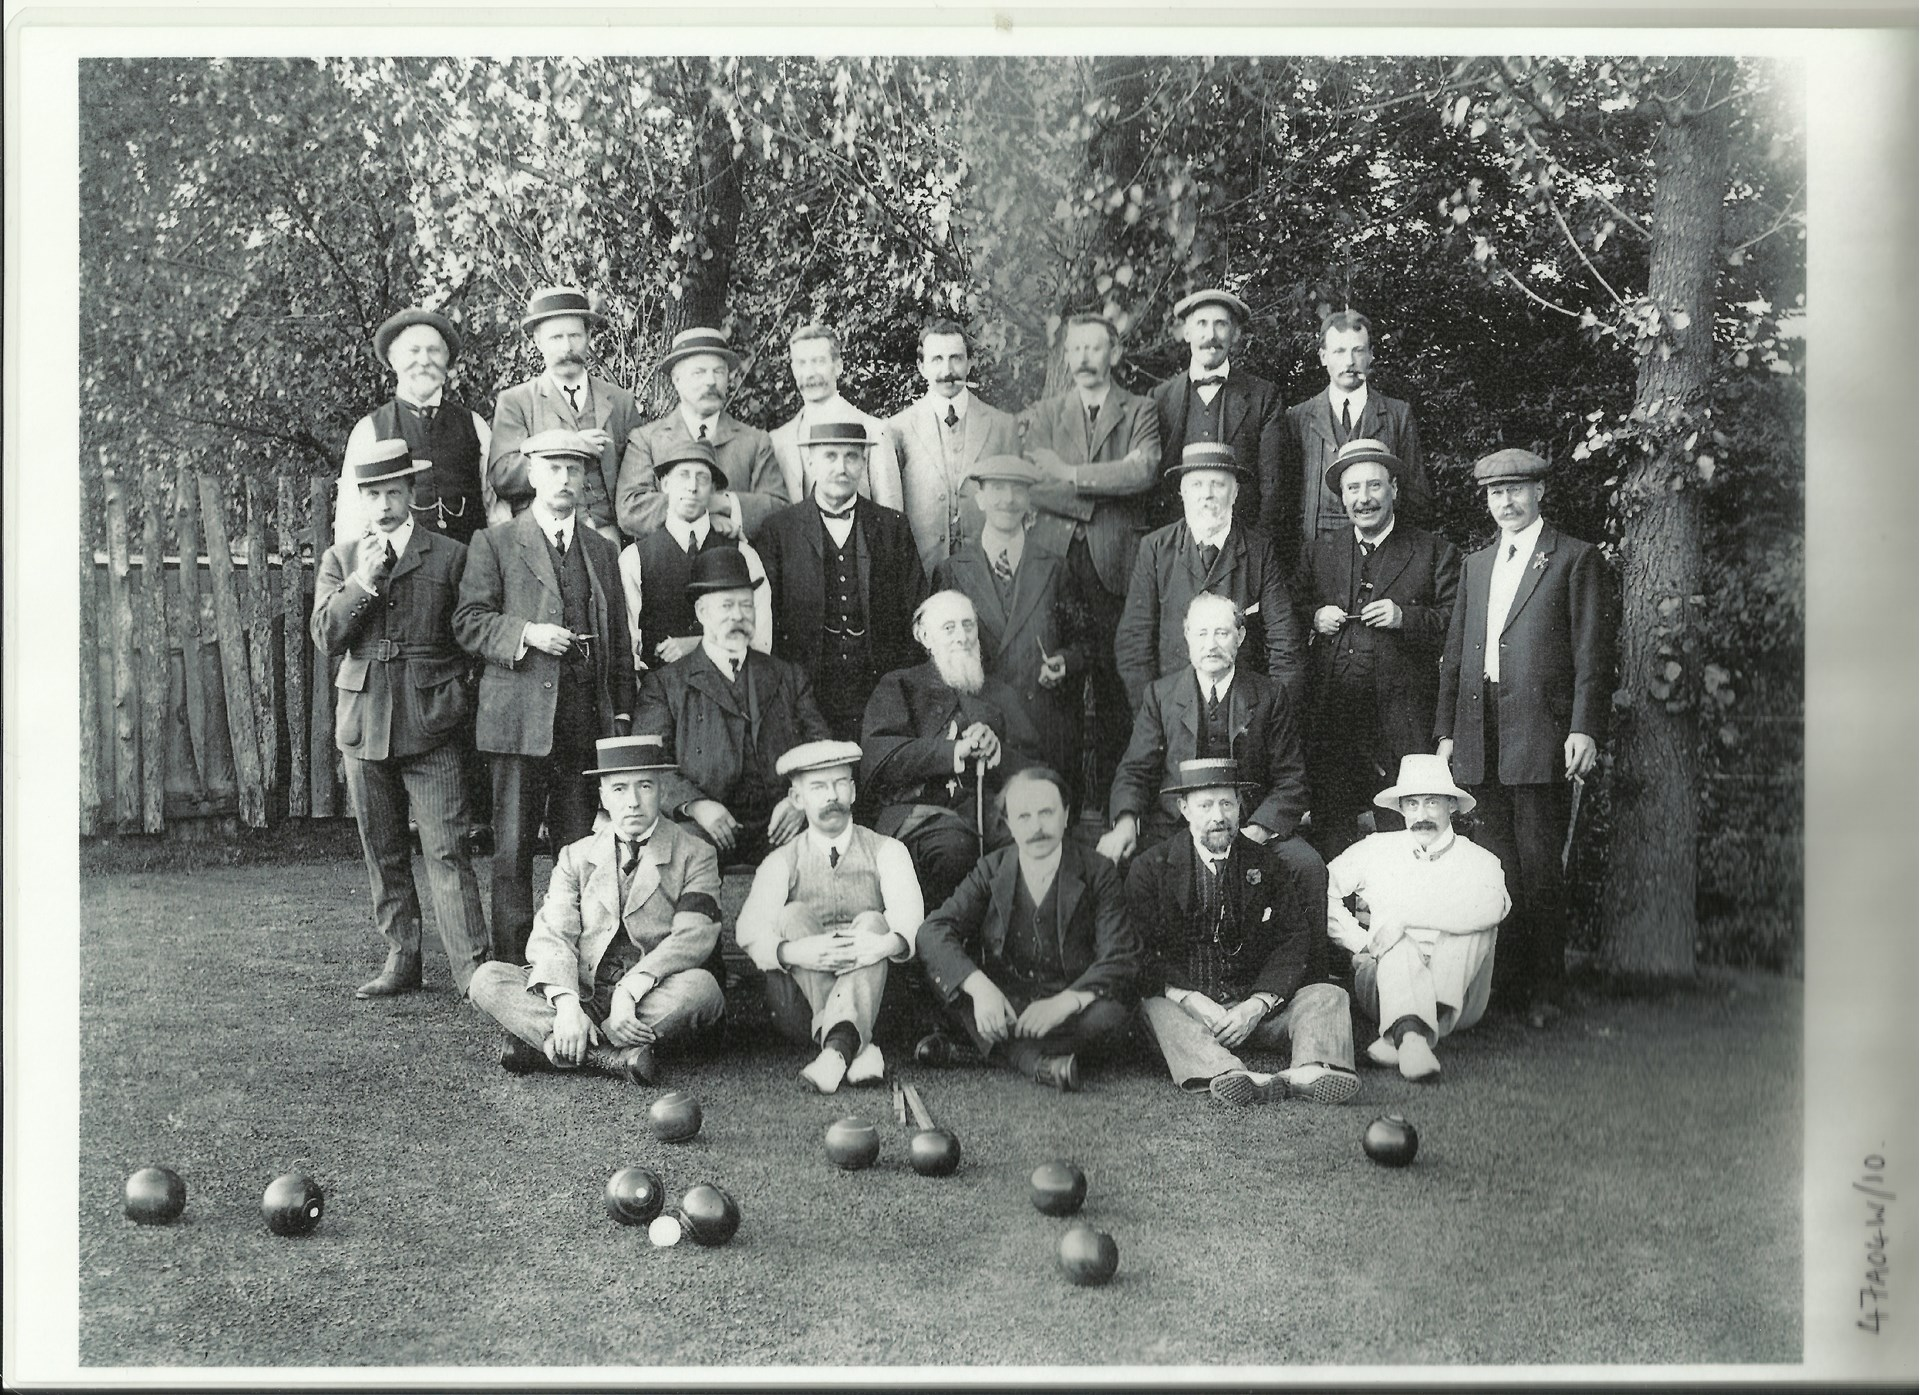 Winchester: The Friary Bowling Club; group portrait C1900